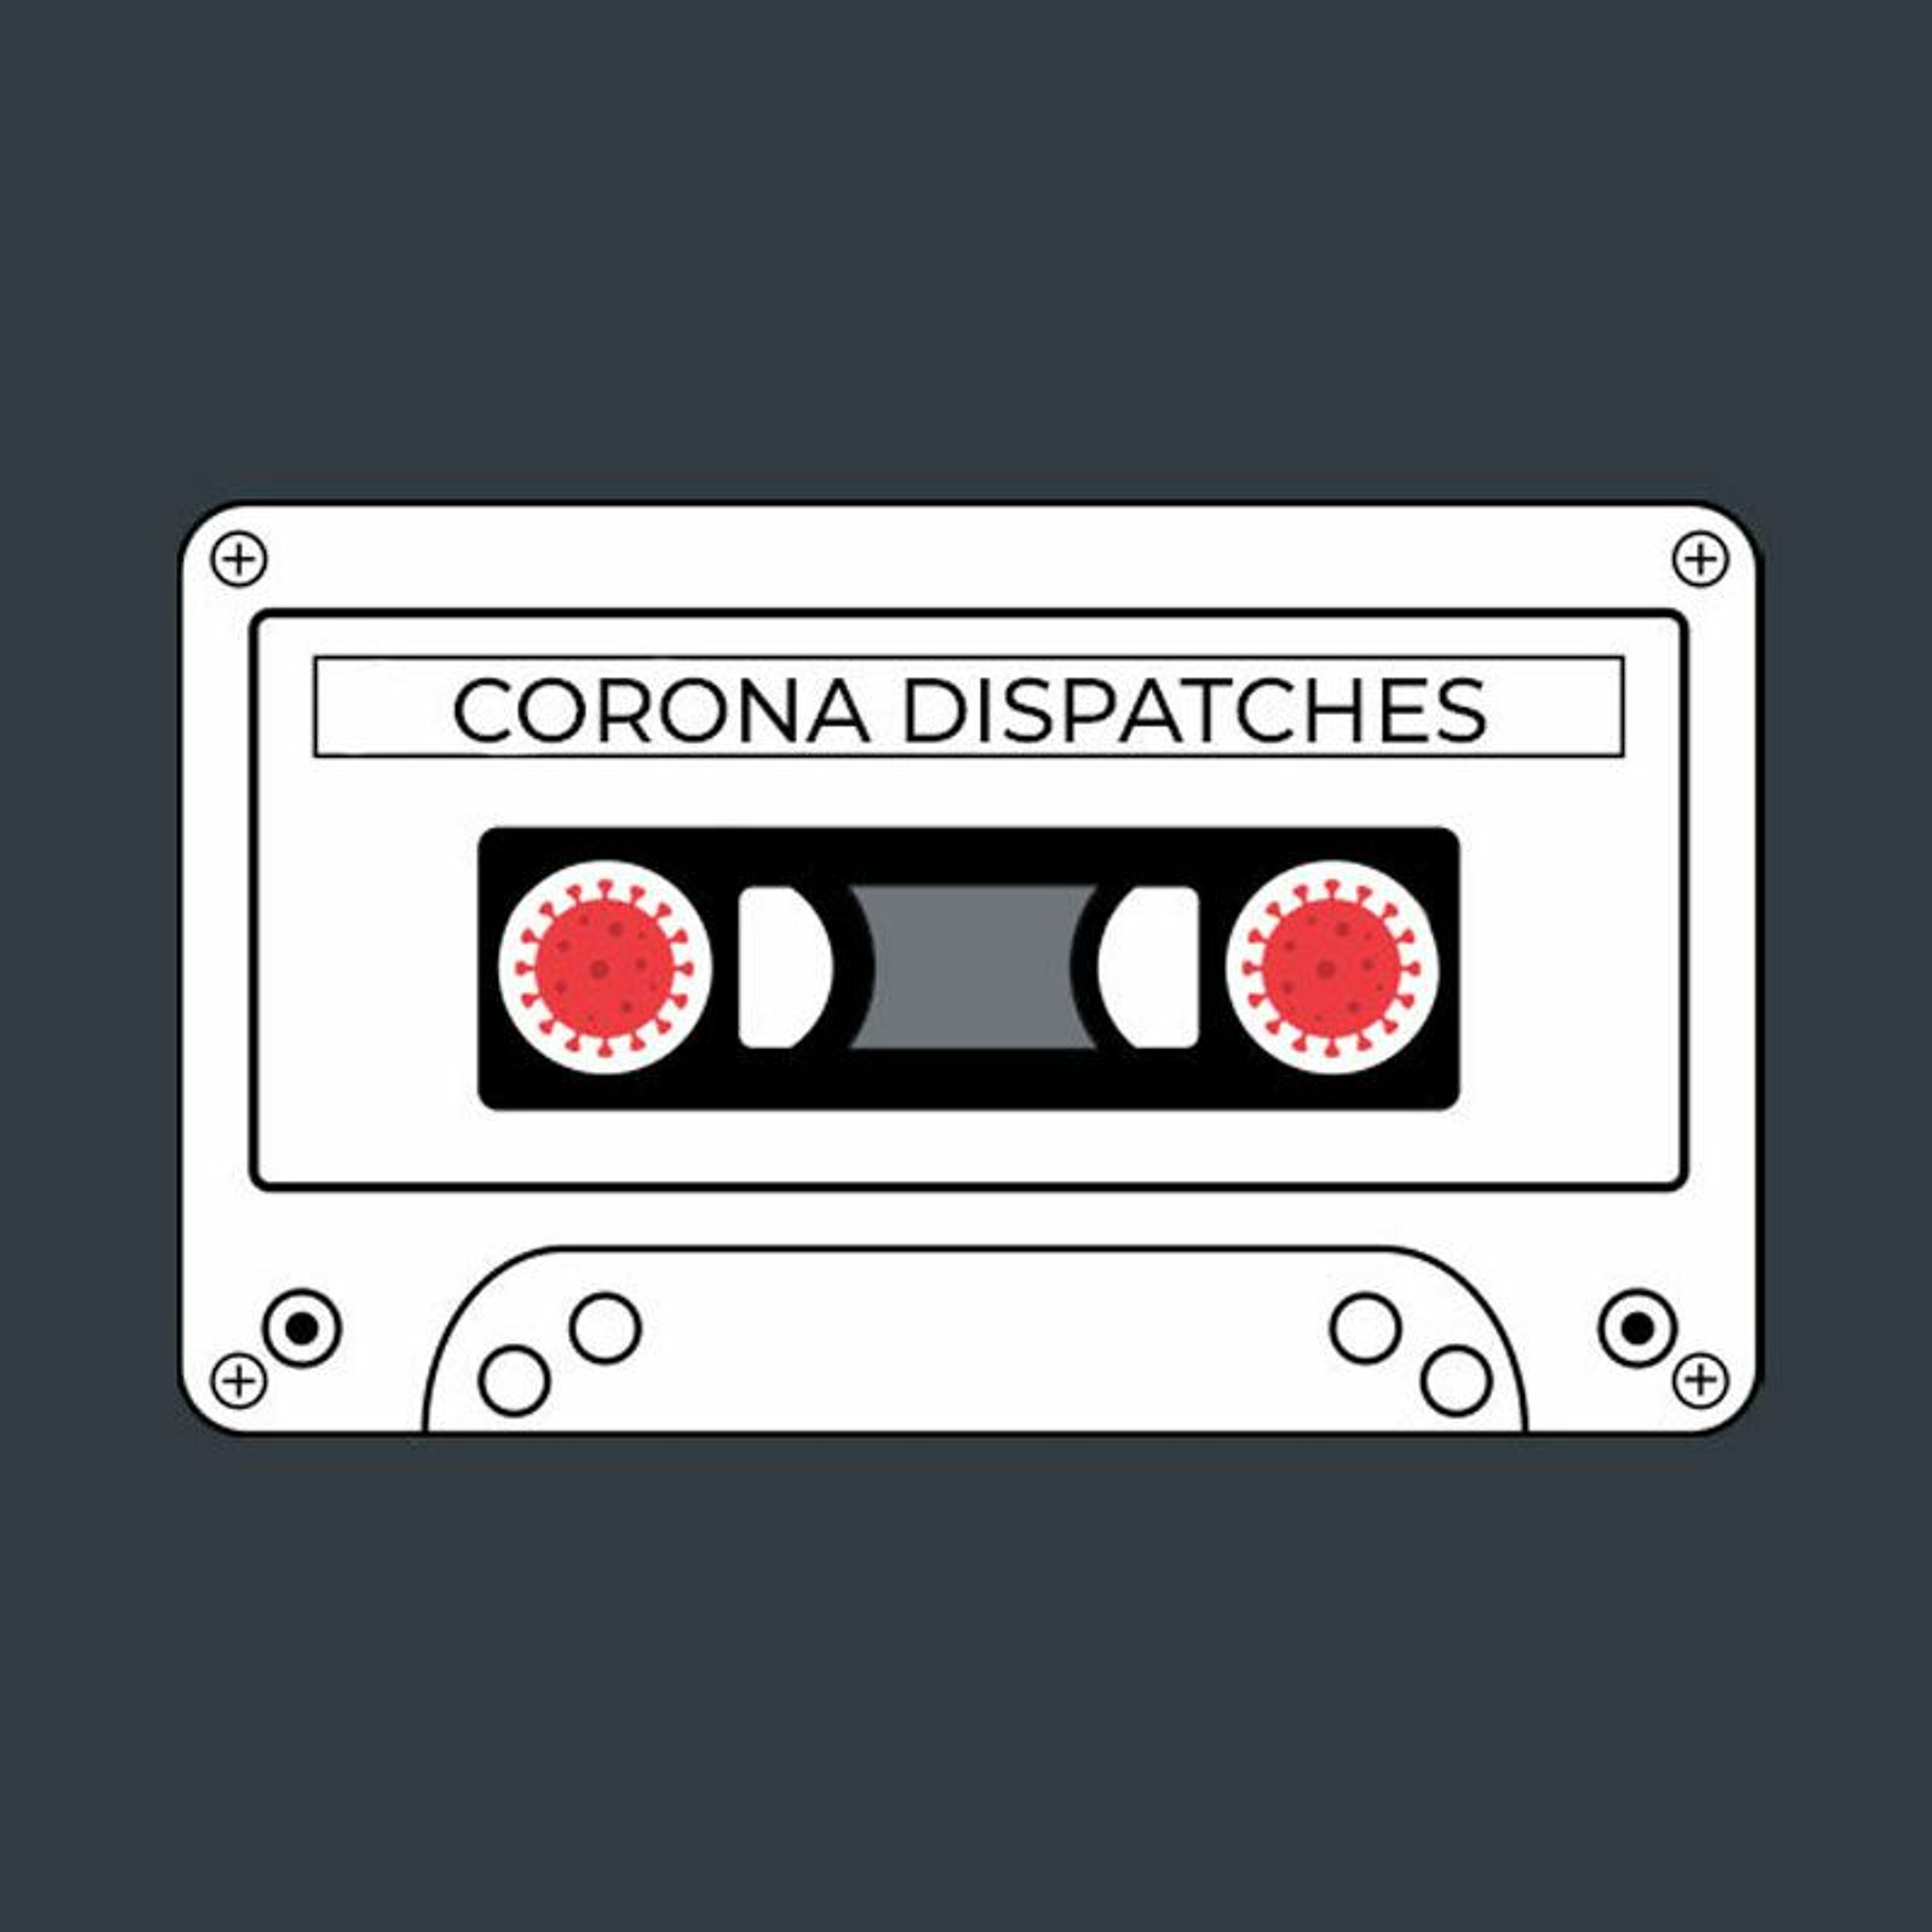 Corona Dispatches: Scholars at the American Academy reflect on the pandemic and its meanings